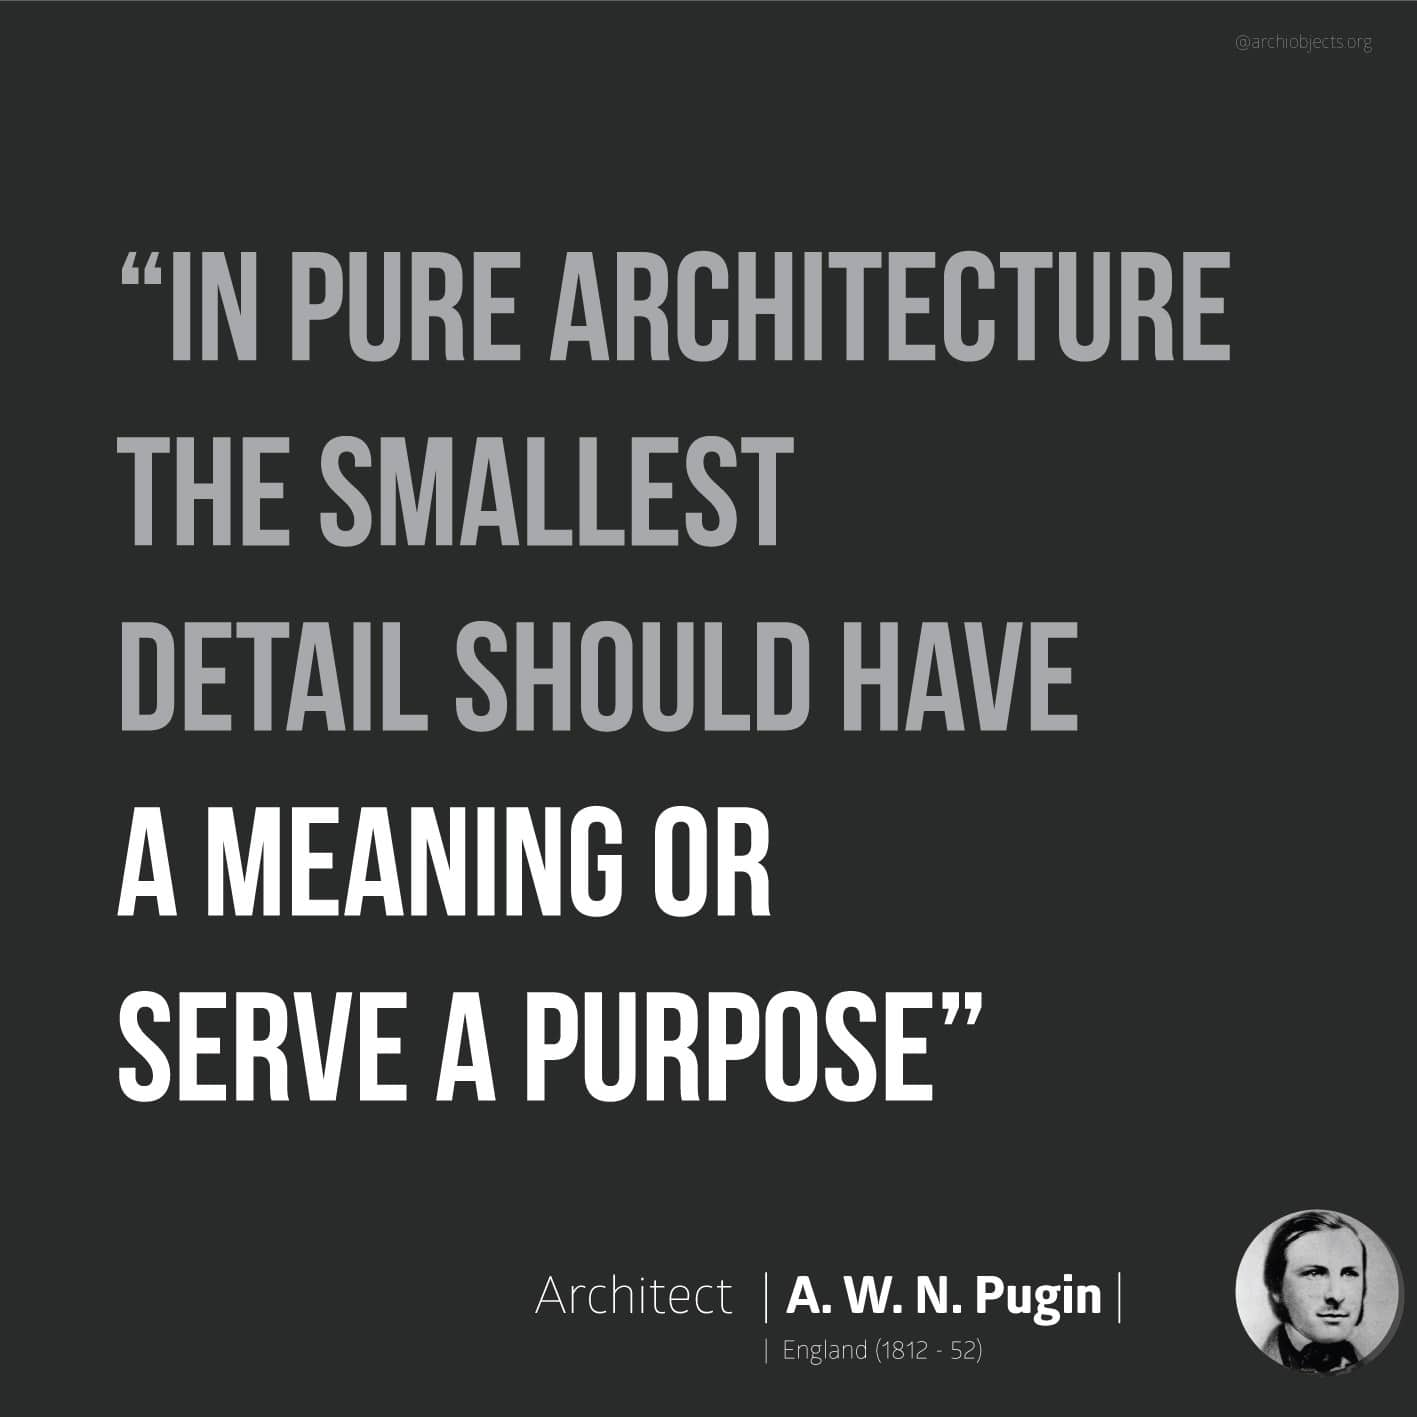 pugin quote